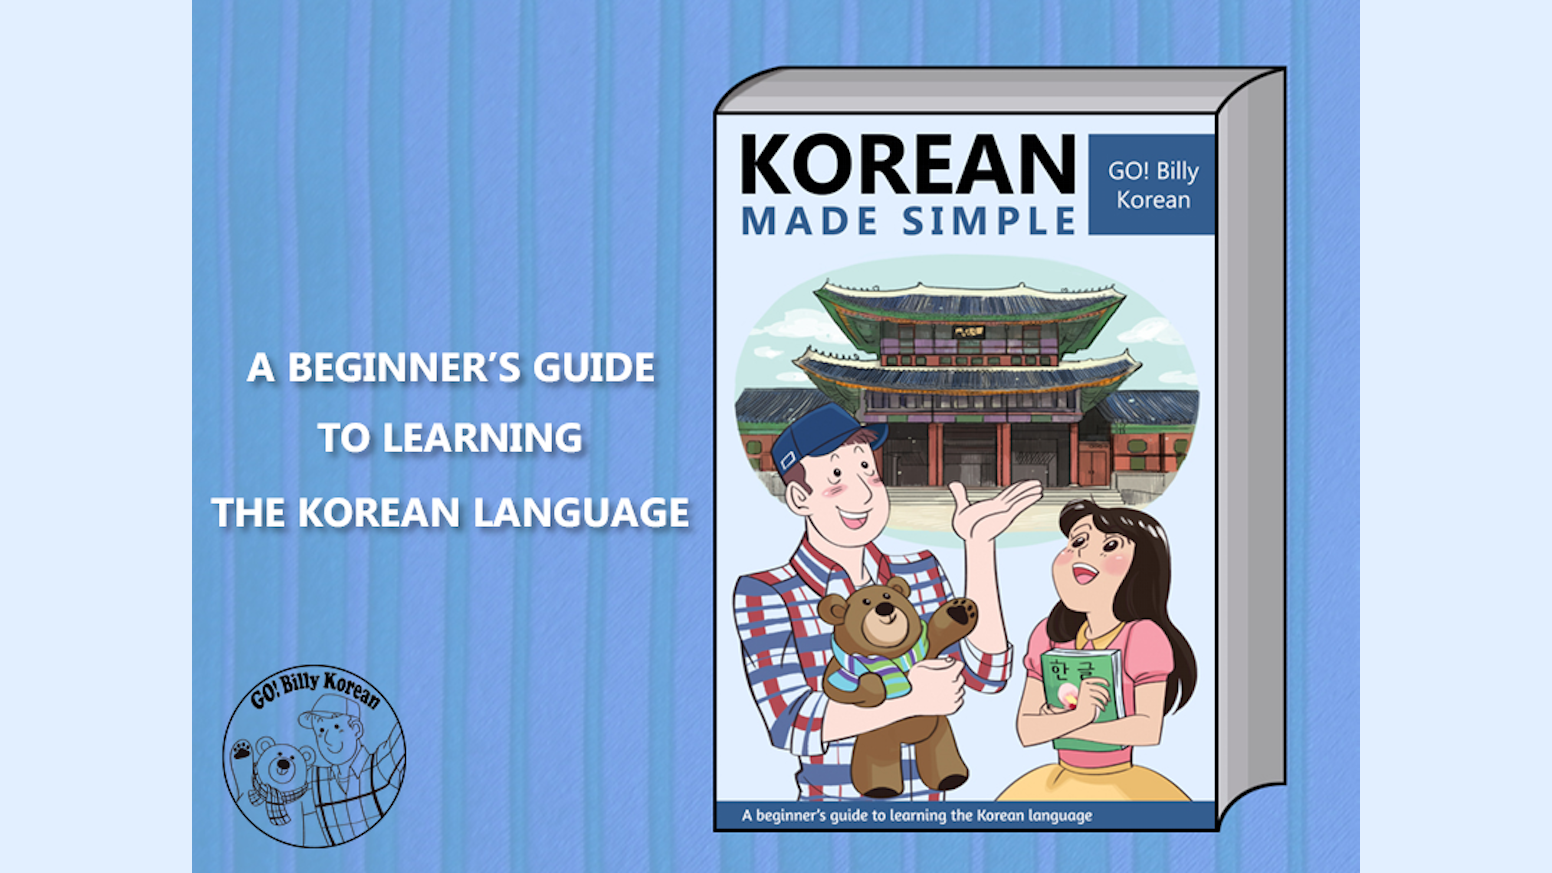 Korean Made Simple - Learn Korean with GO! Billy Korean